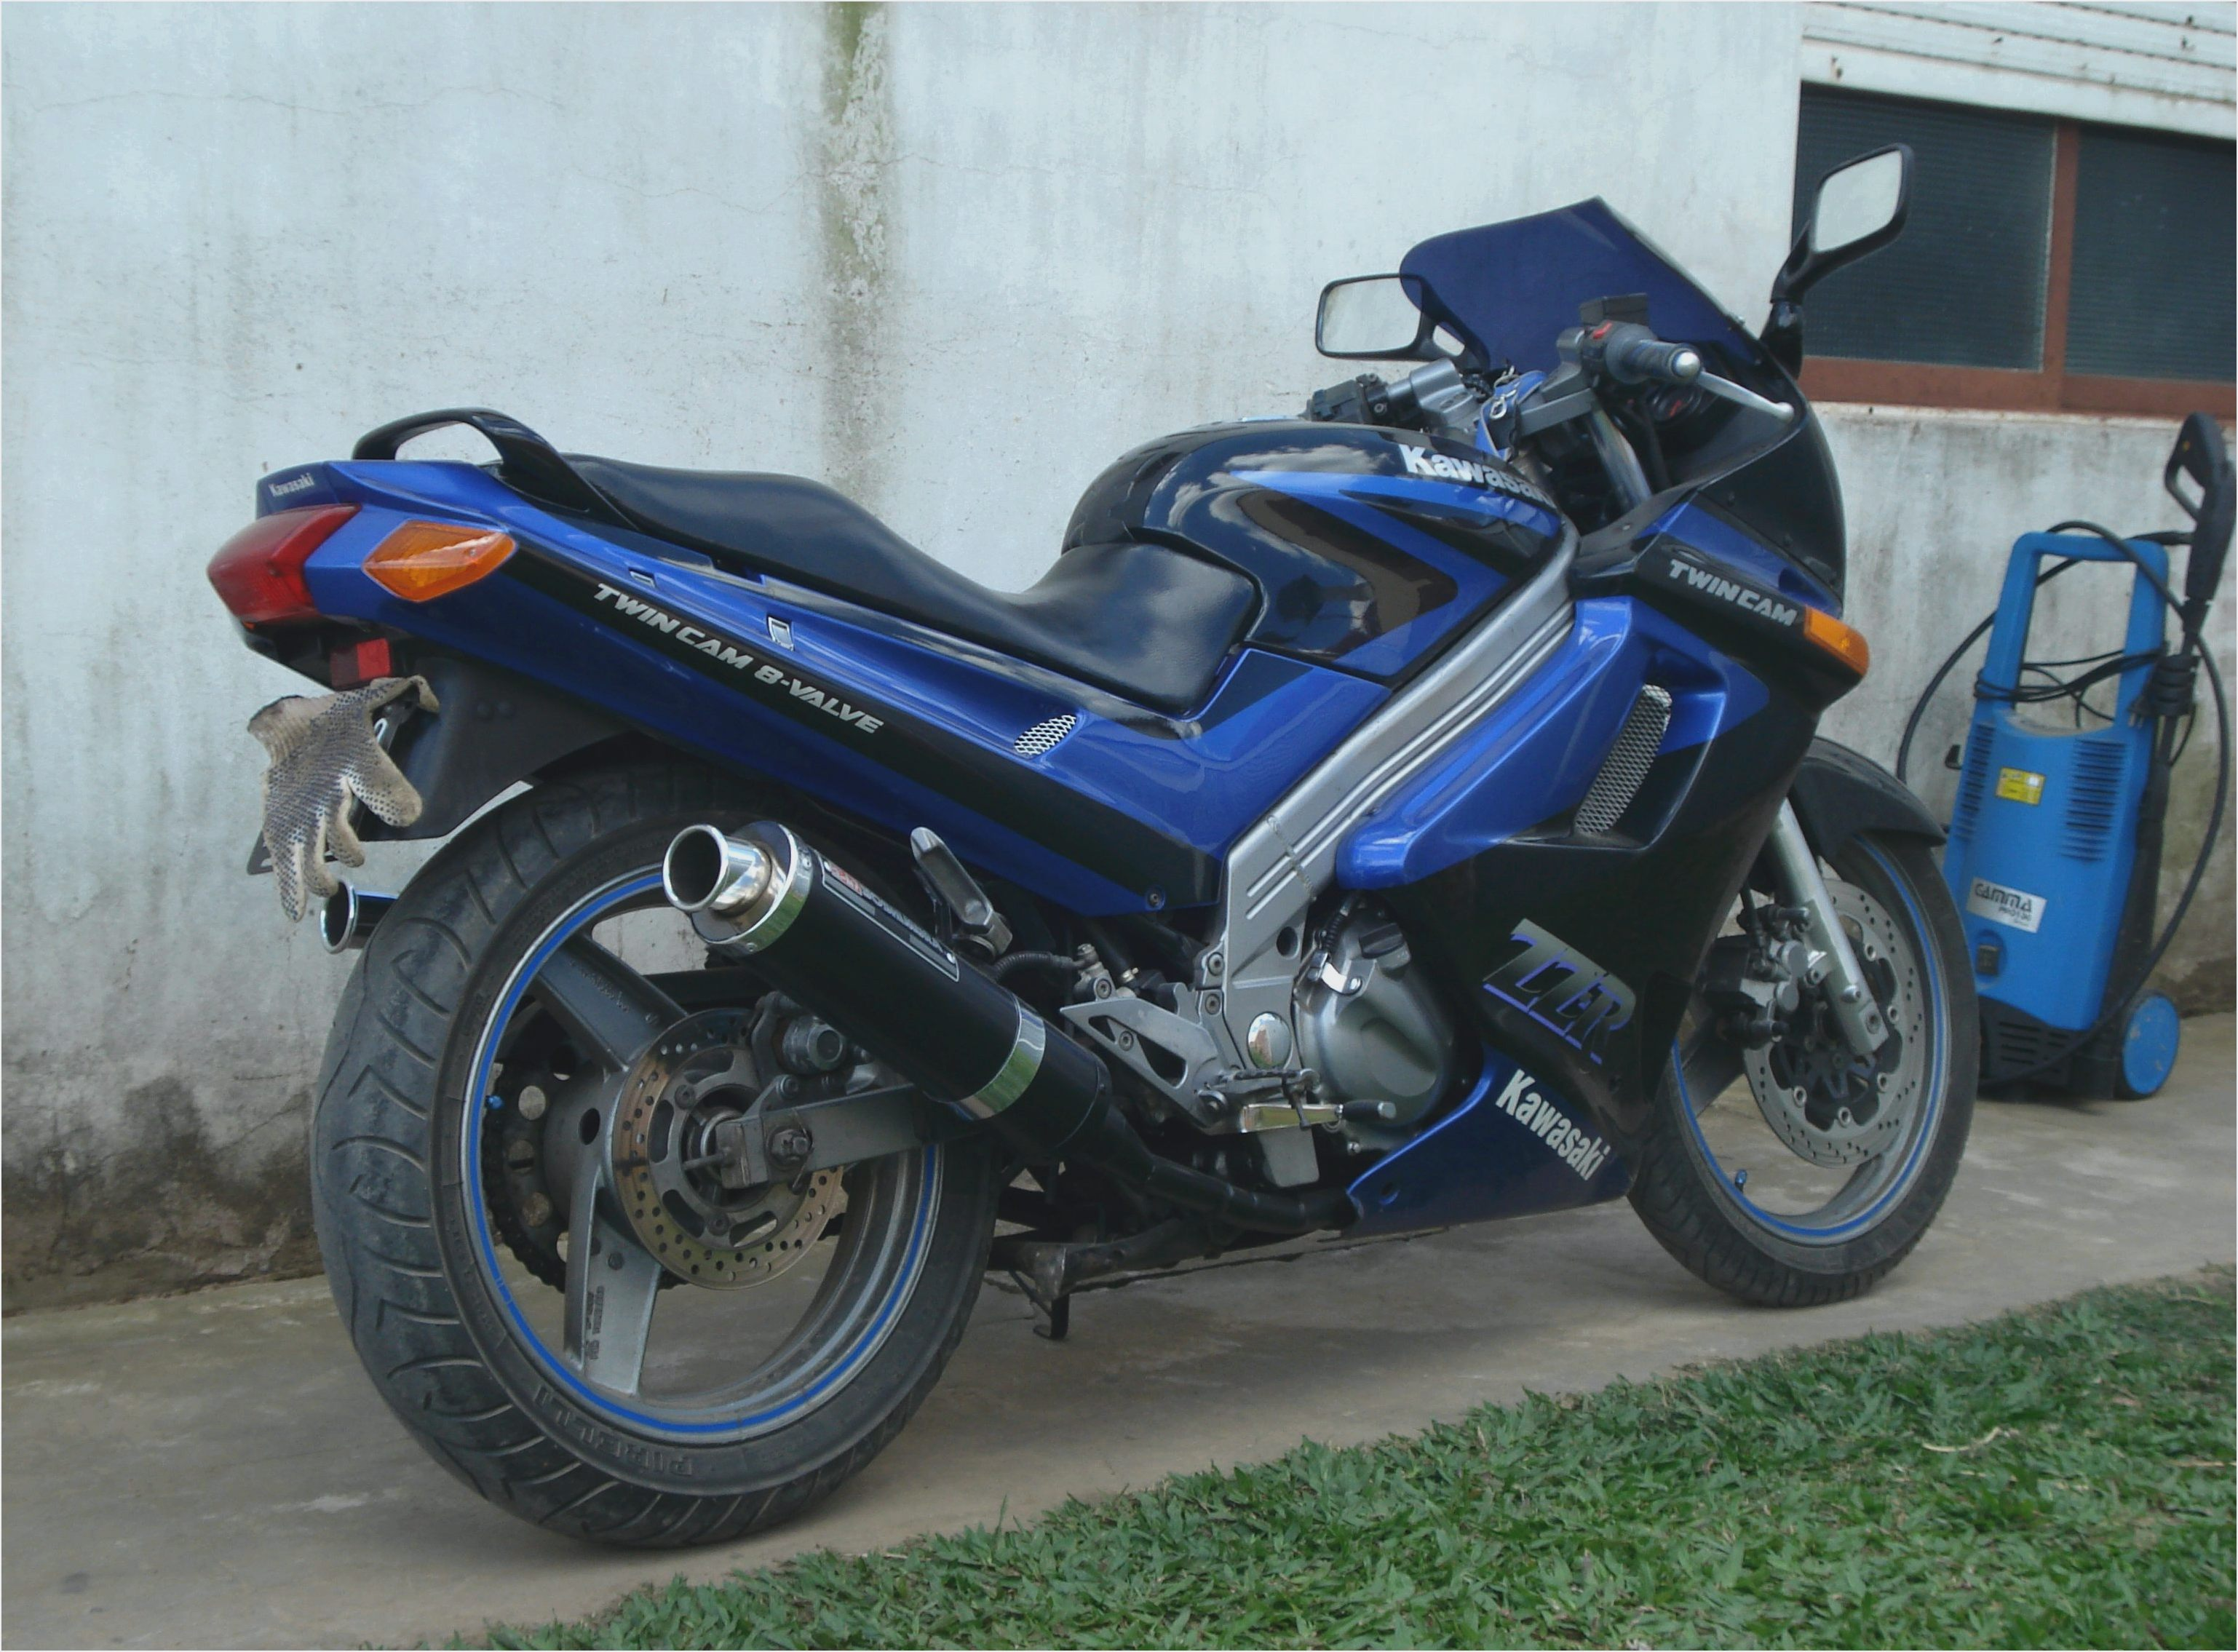 Motorcycle Kawasaki ZZR 250: photos, review, specifications, owner reviews 58